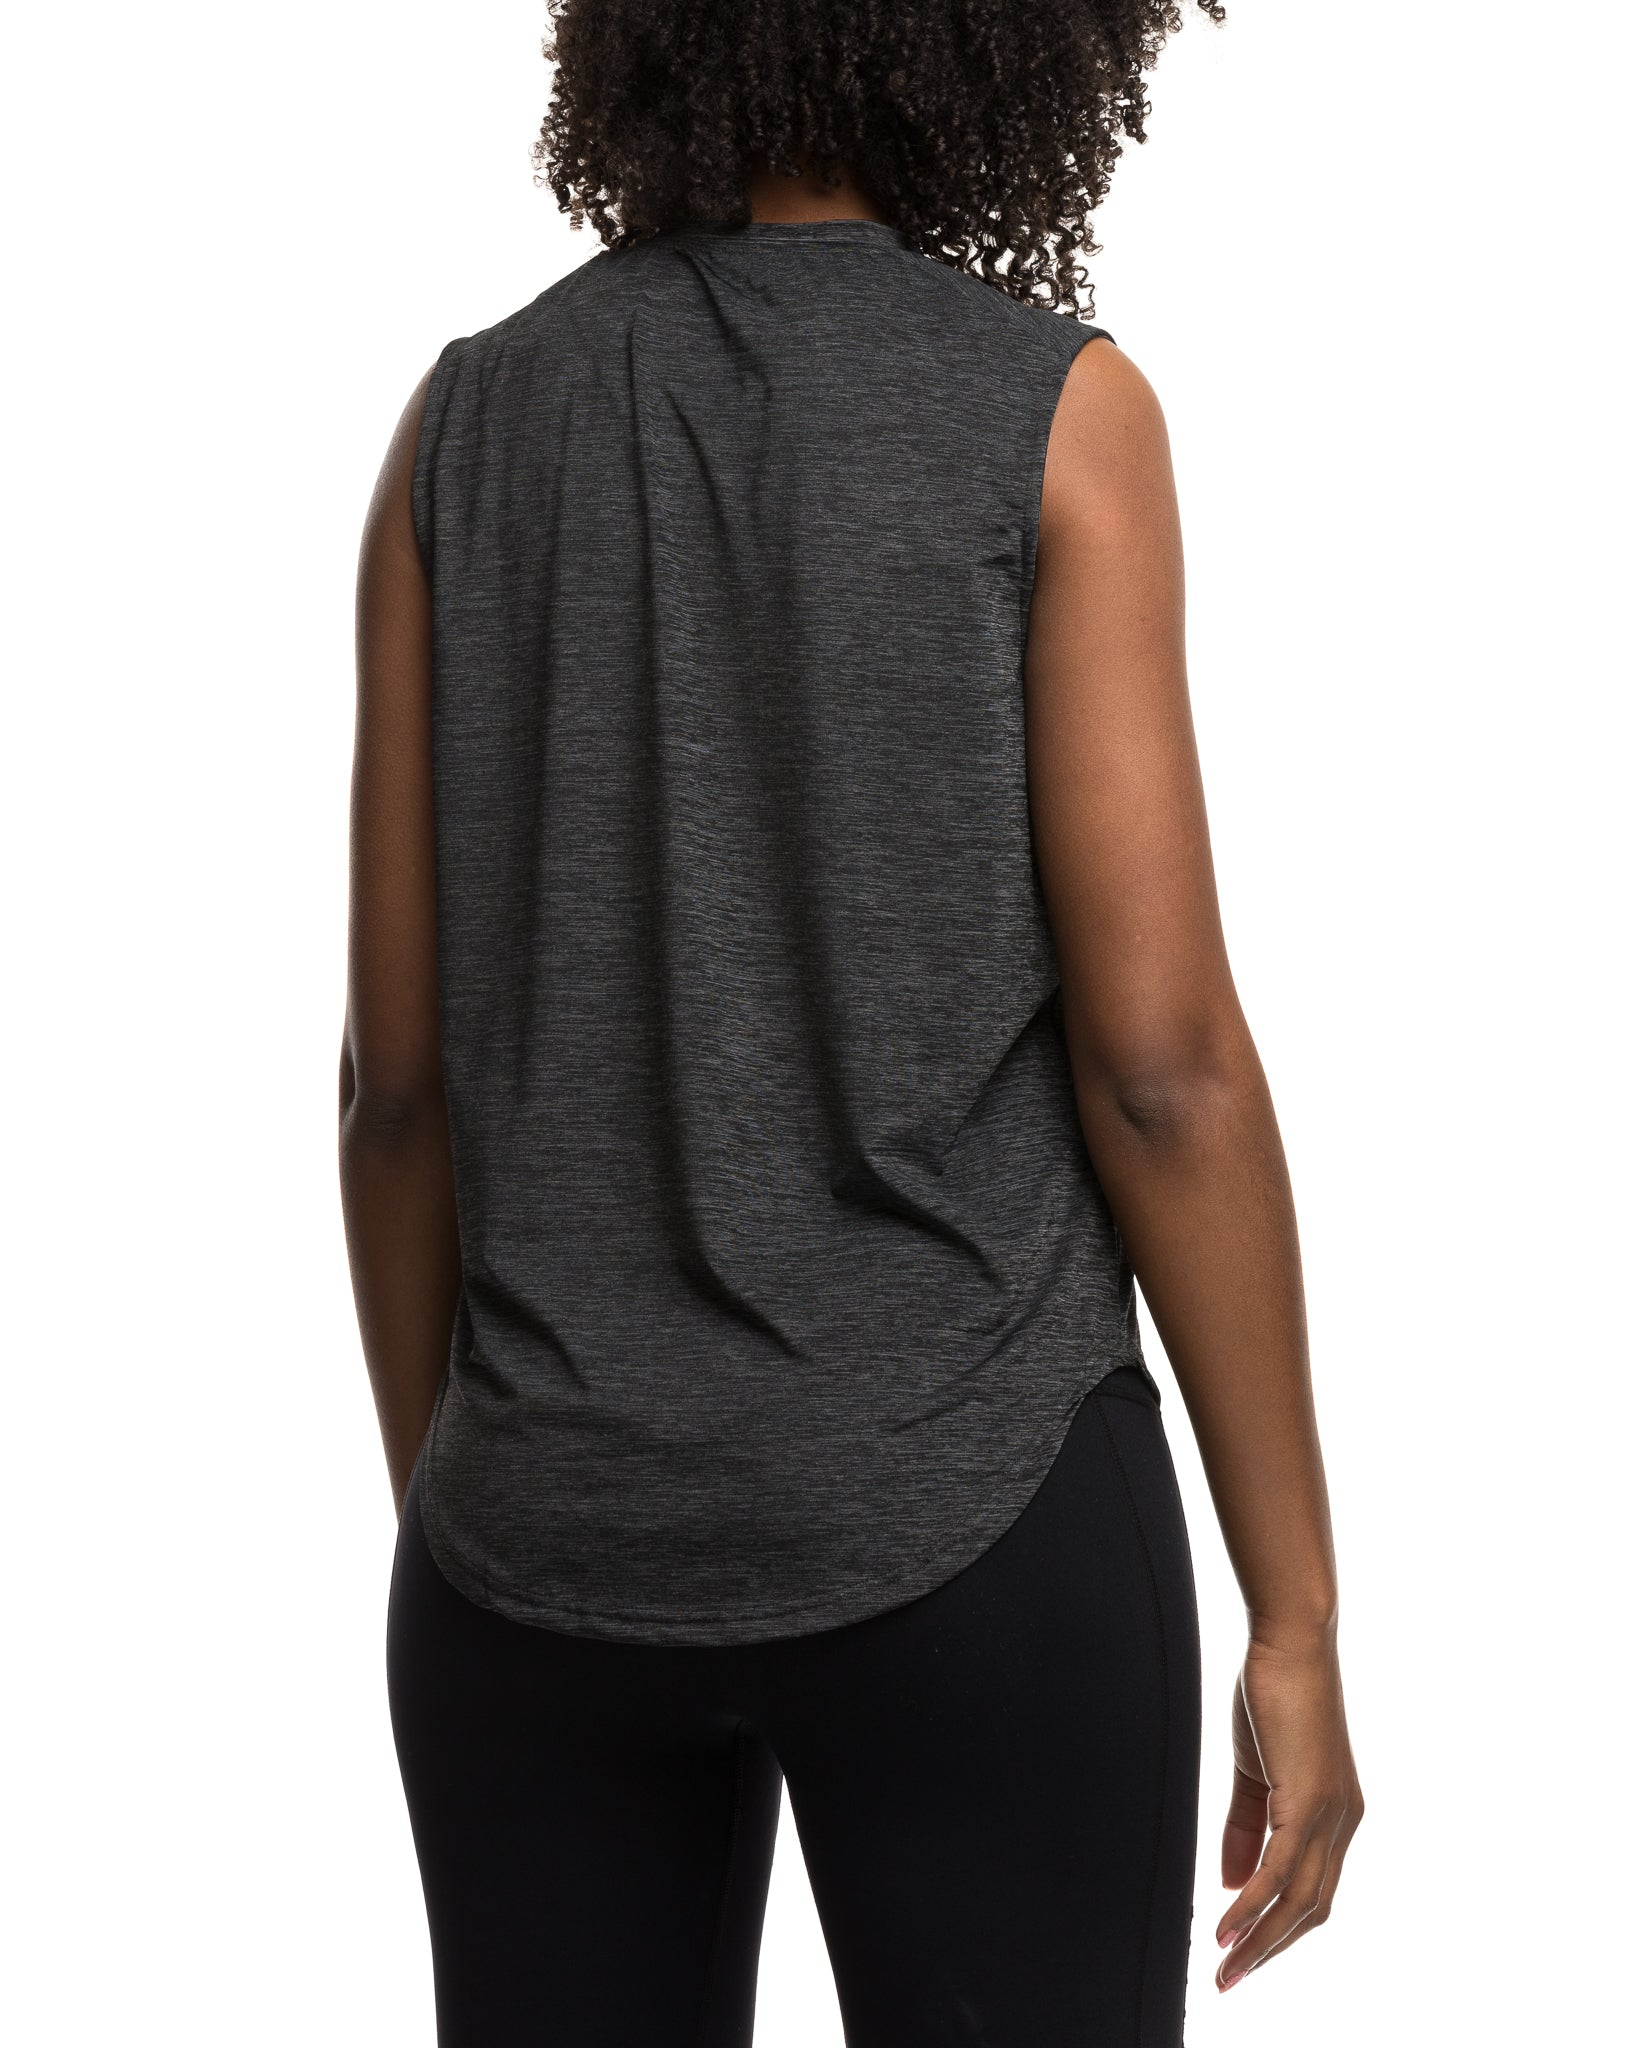 Women's Active Faith Curved Performance Tank